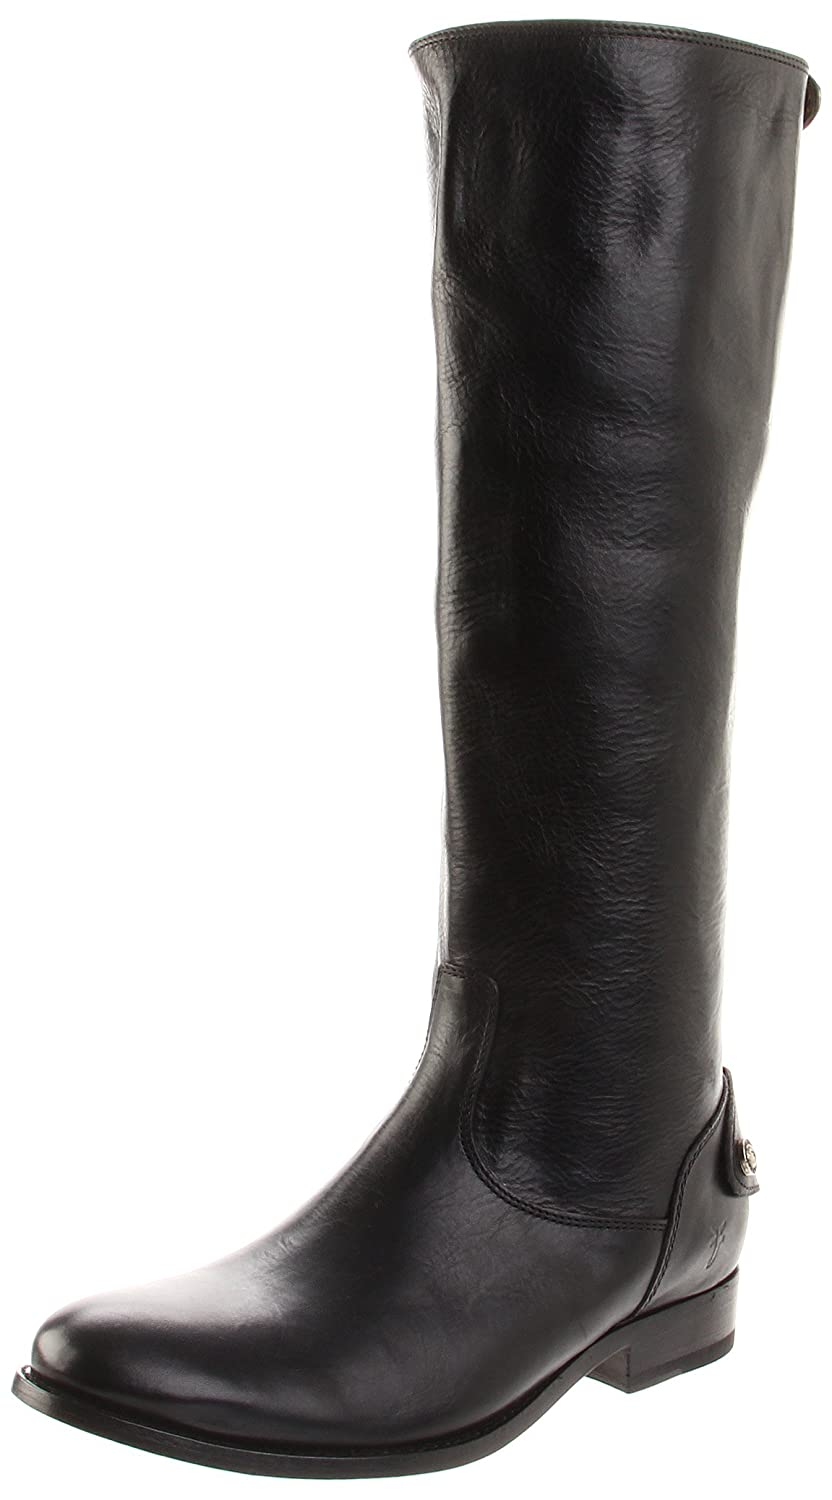 FRYE Women's Melissa Button Back-Zip Boot B004HVC3TE 7 B(M) US|Black Smooth Vintage Leather-76431